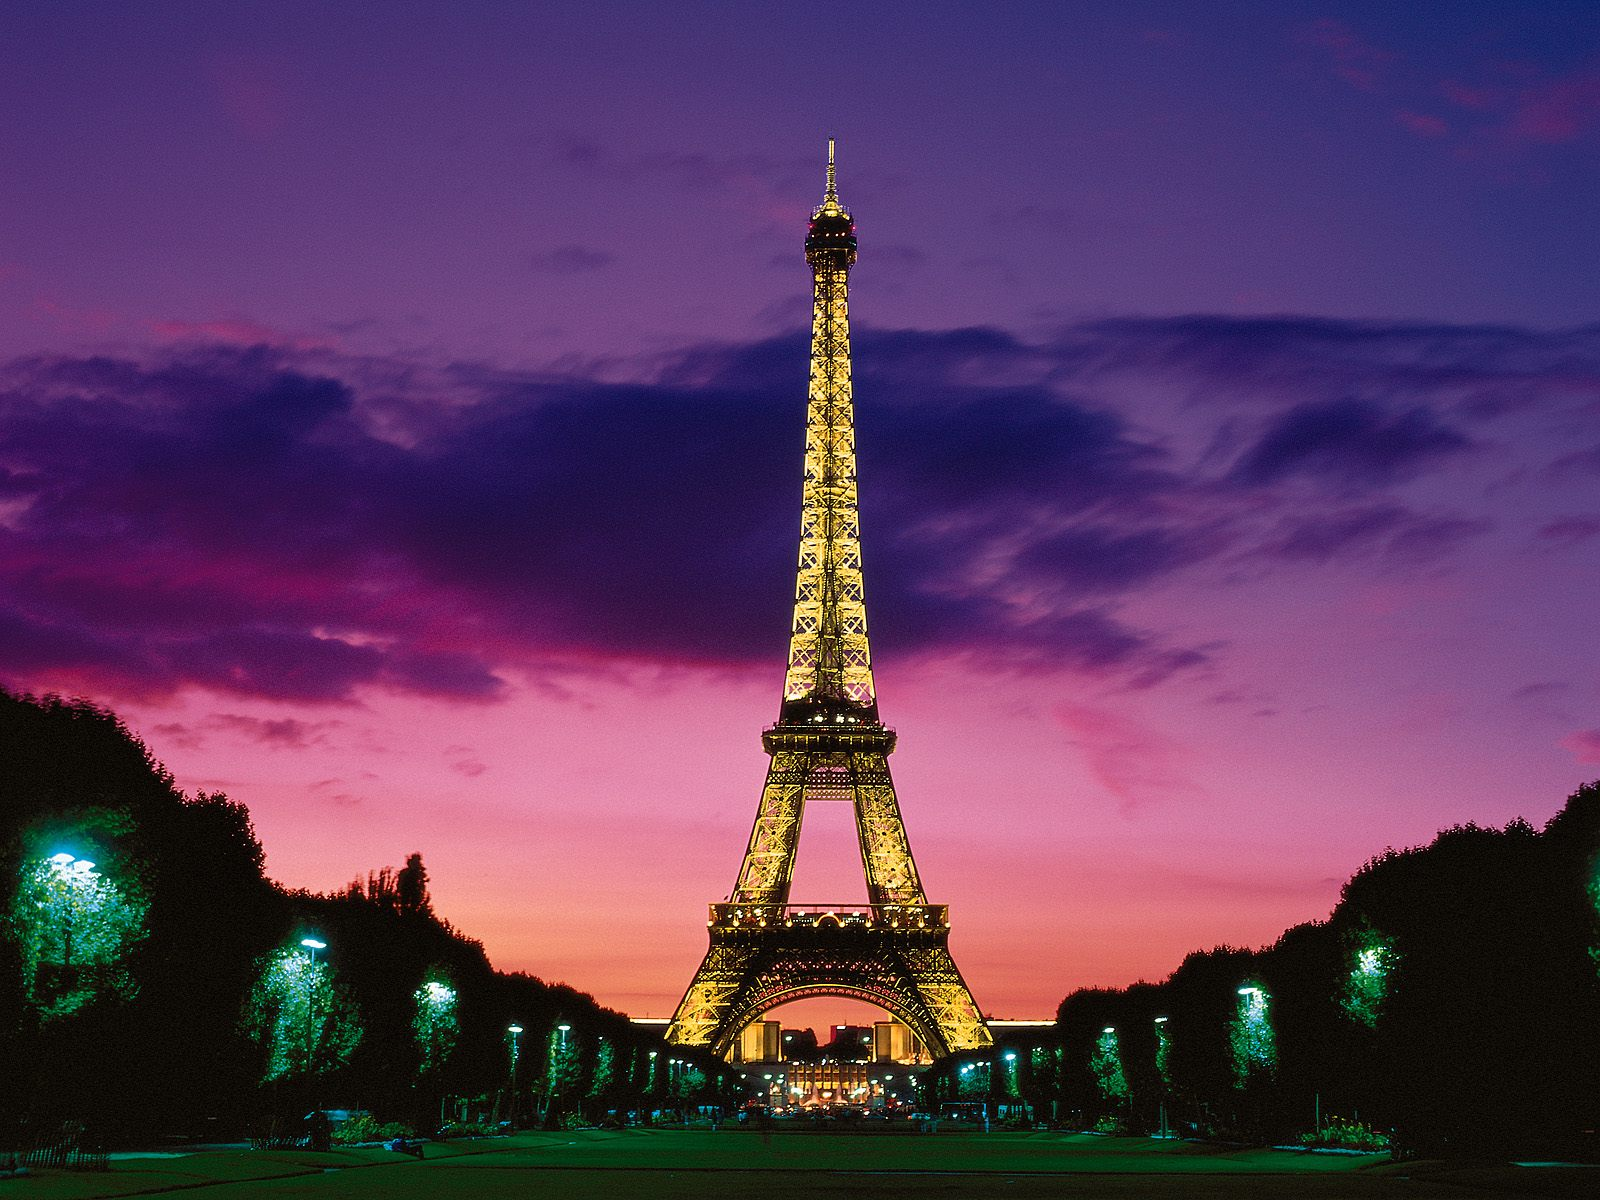 http://4.bp.blogspot.com/_2IU2Nt4rD1k/TSjJ9V64J2I/AAAAAAAACeU/c-qpm0lymwg/s1600/Eiffel_Tower_at_Night_Paris_.jpg